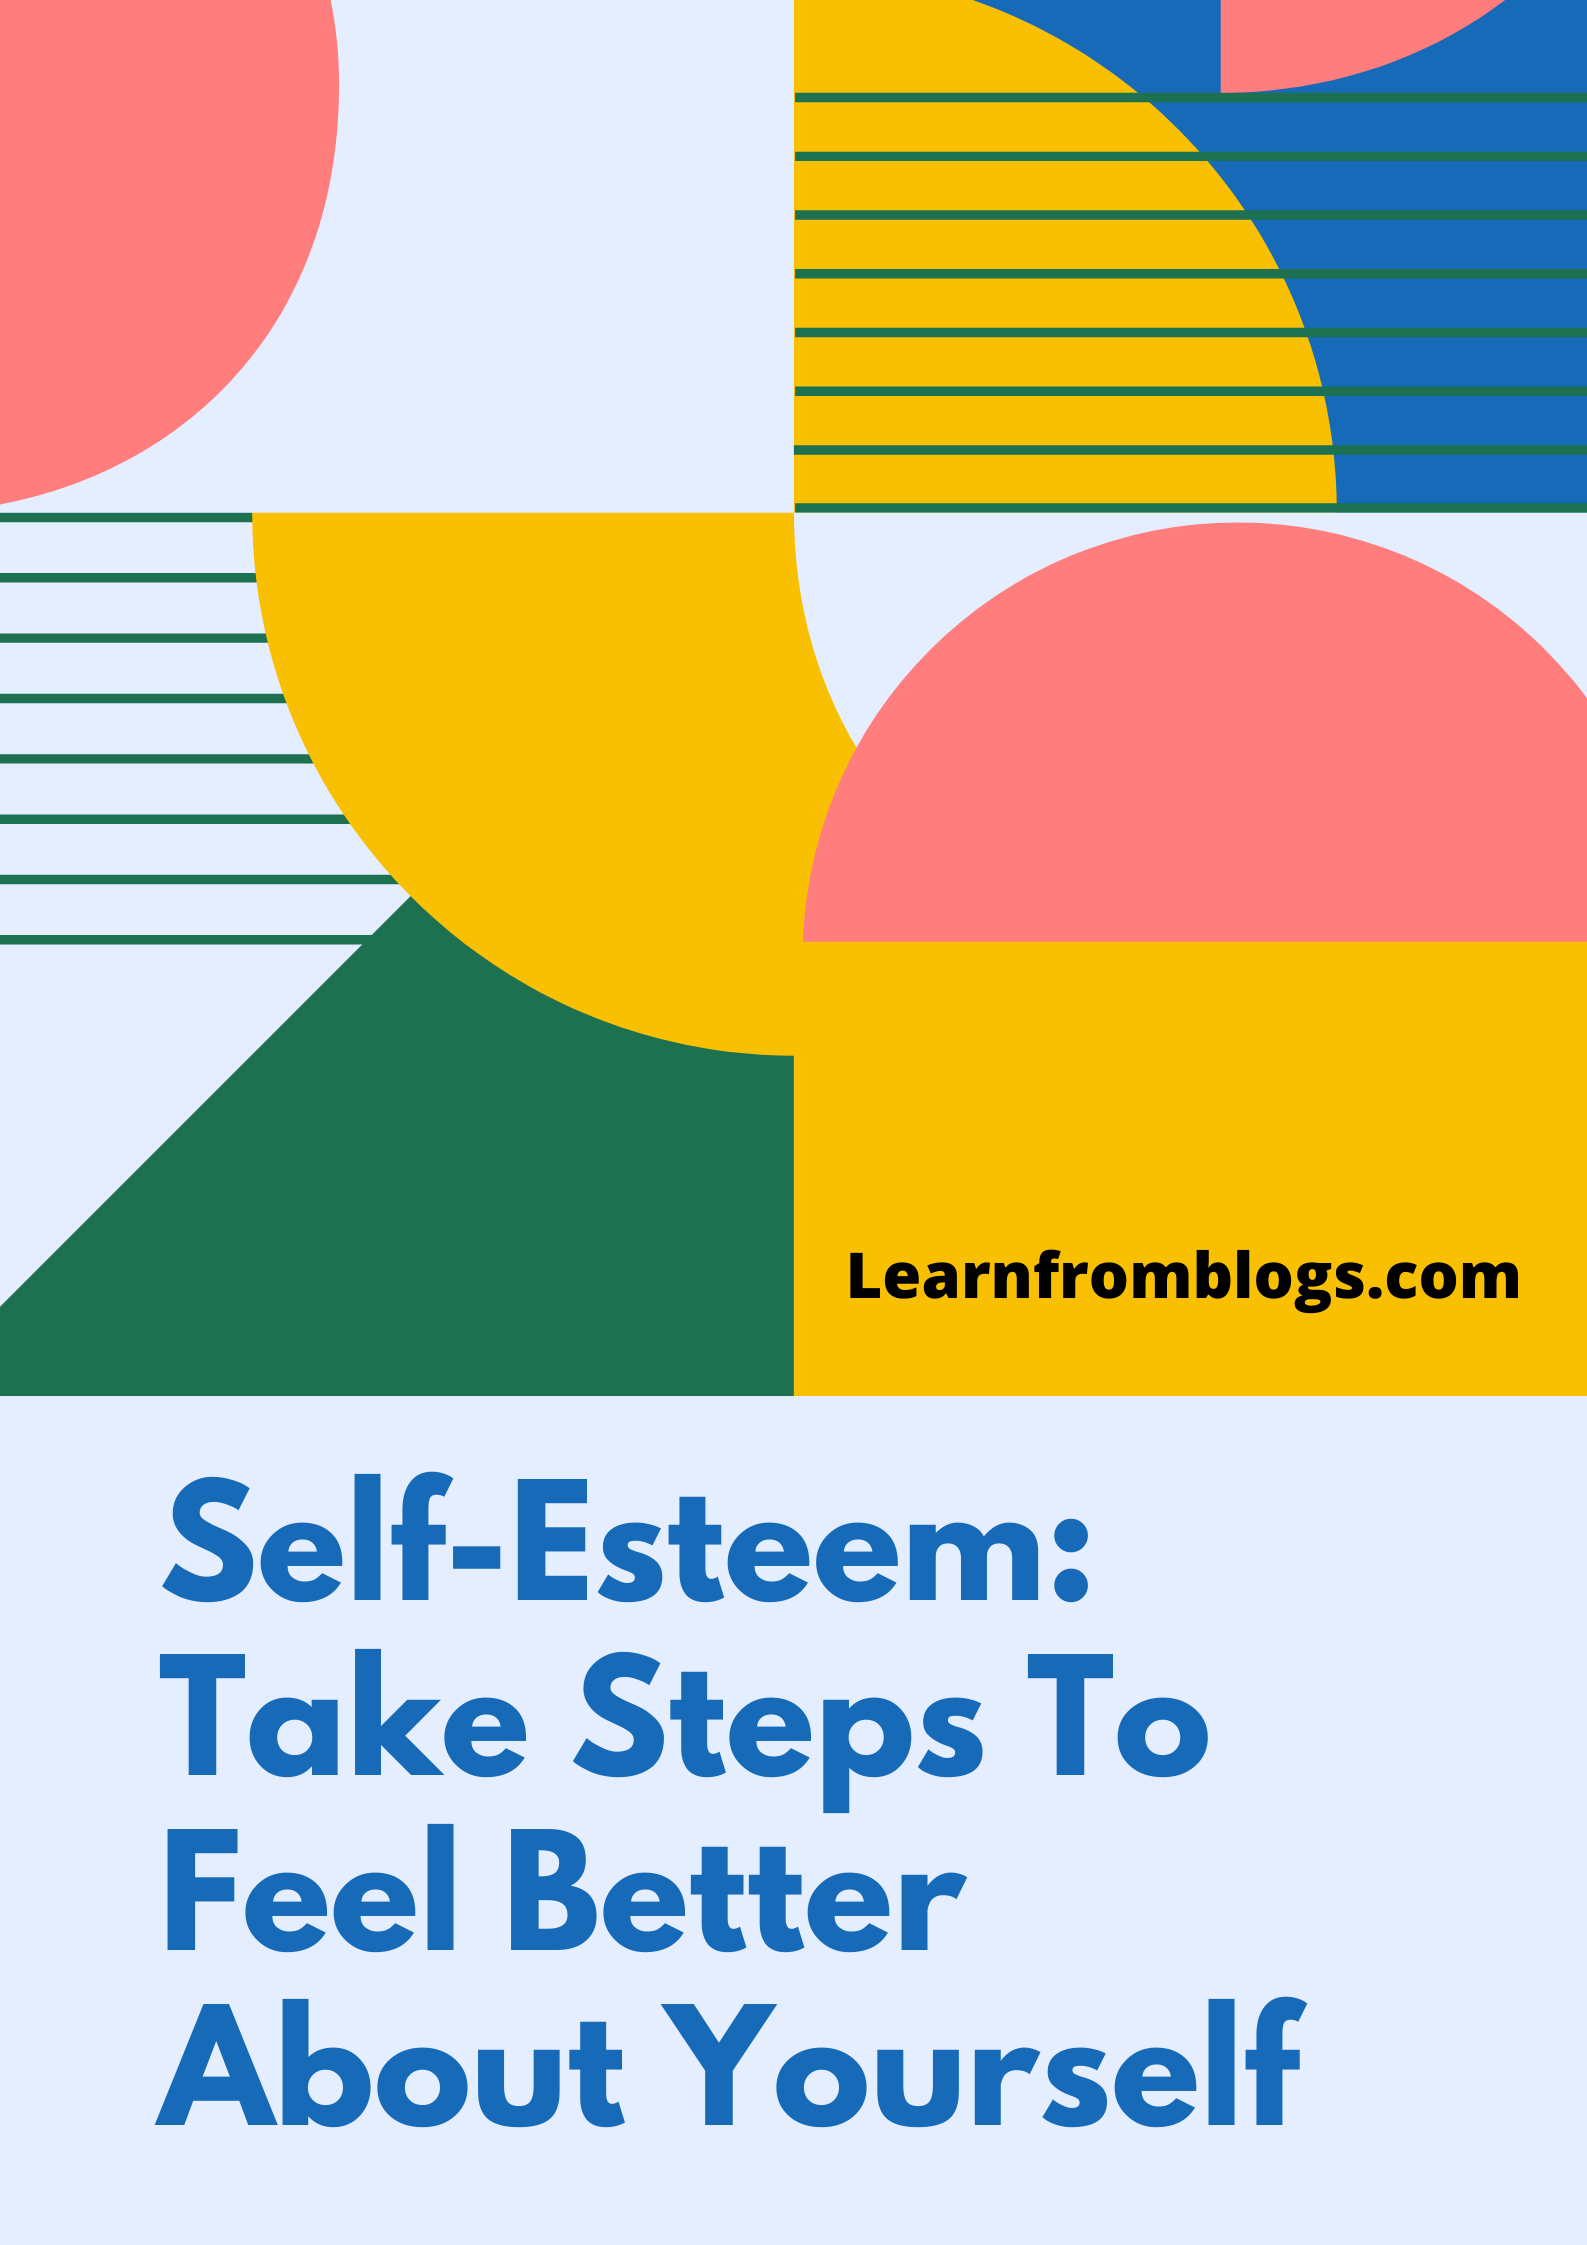 Self-Esteem: Take Steps To Feel Better About Yourself.png